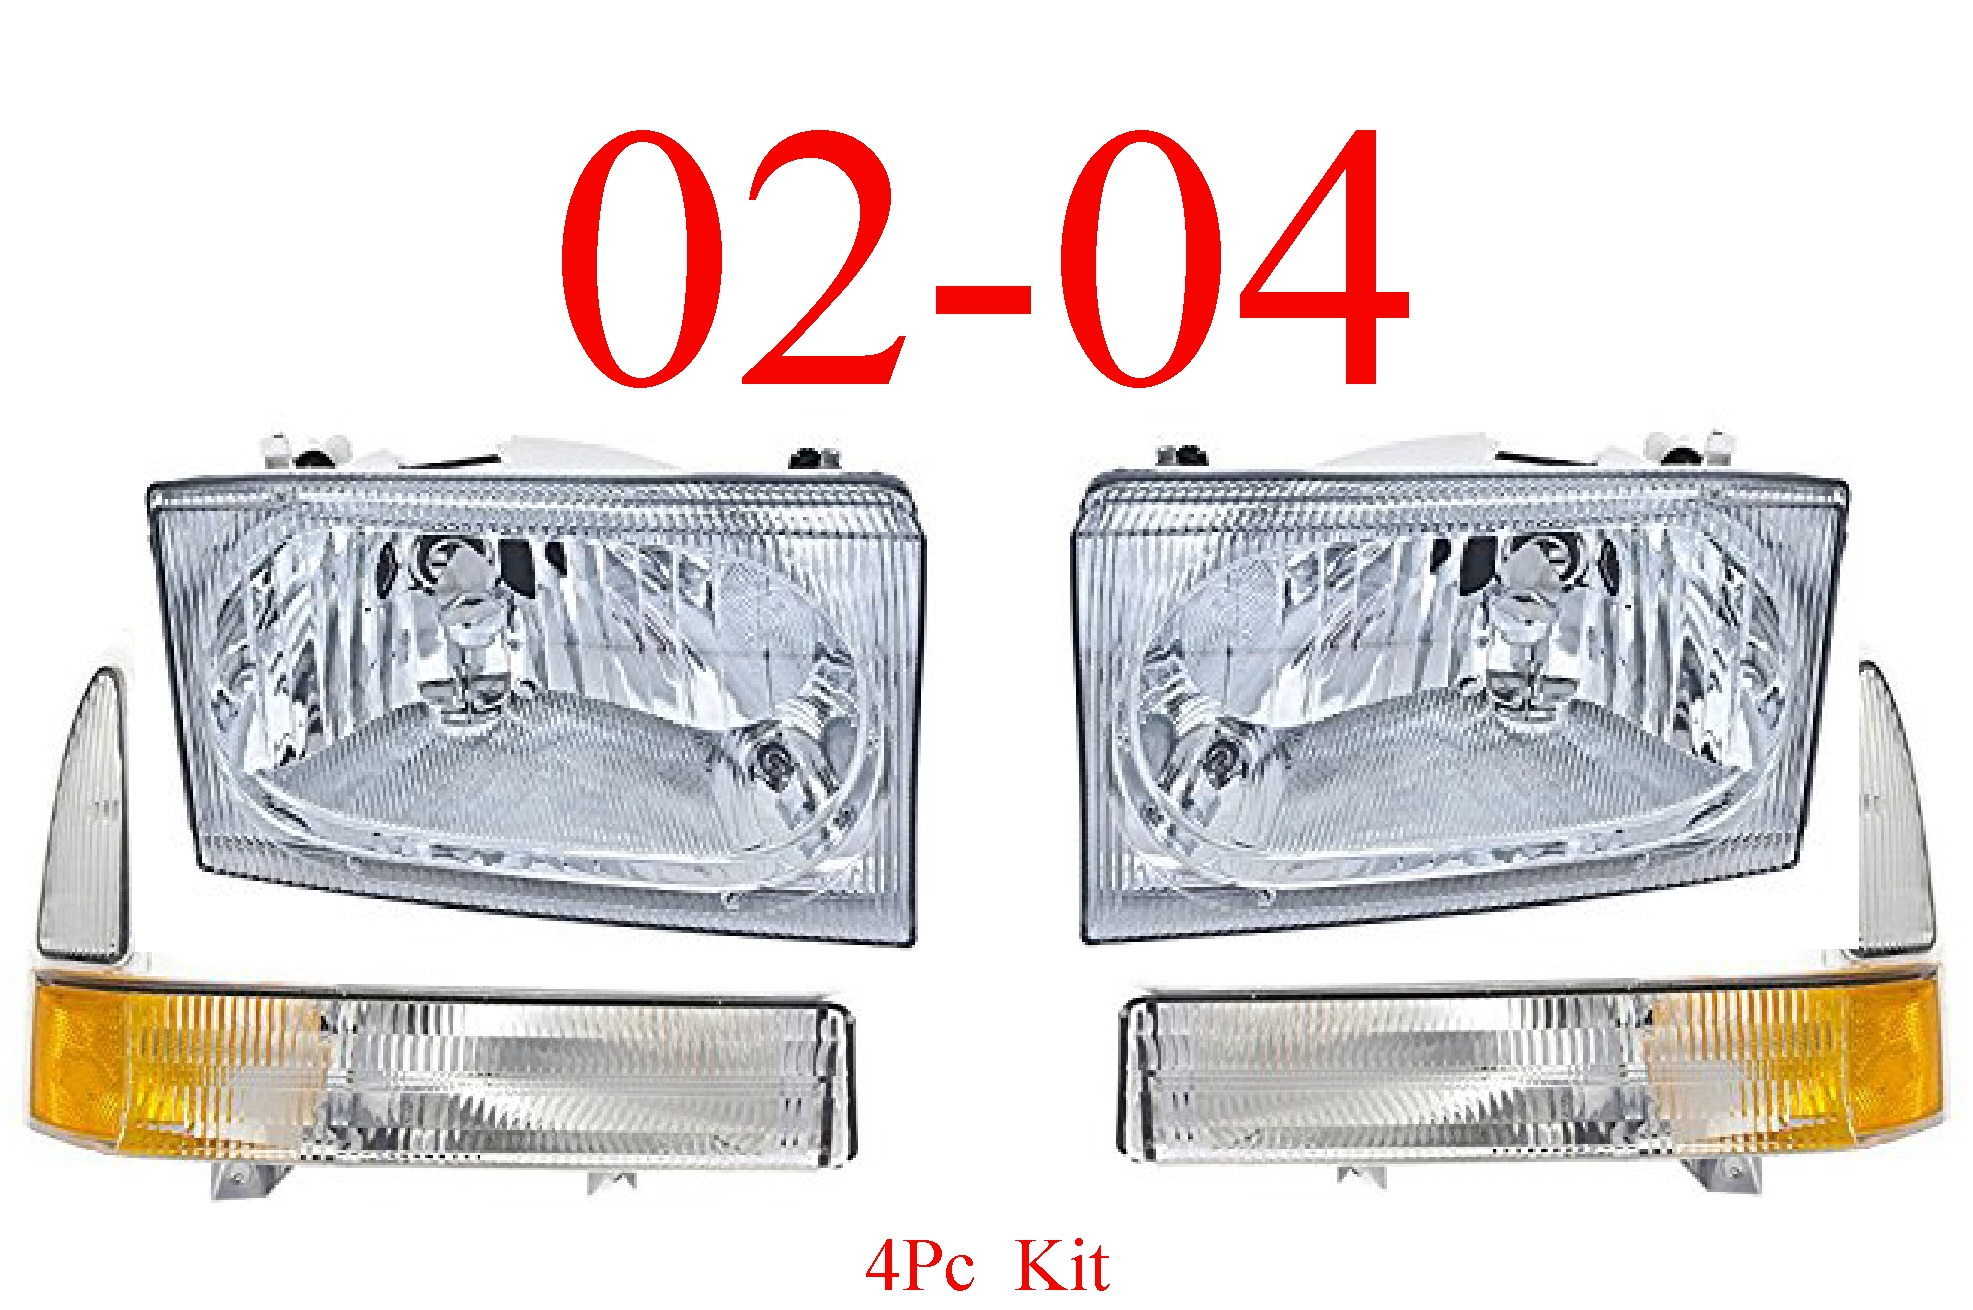 02-04 Ford Excursion 4Pc Head & Park Light Kit